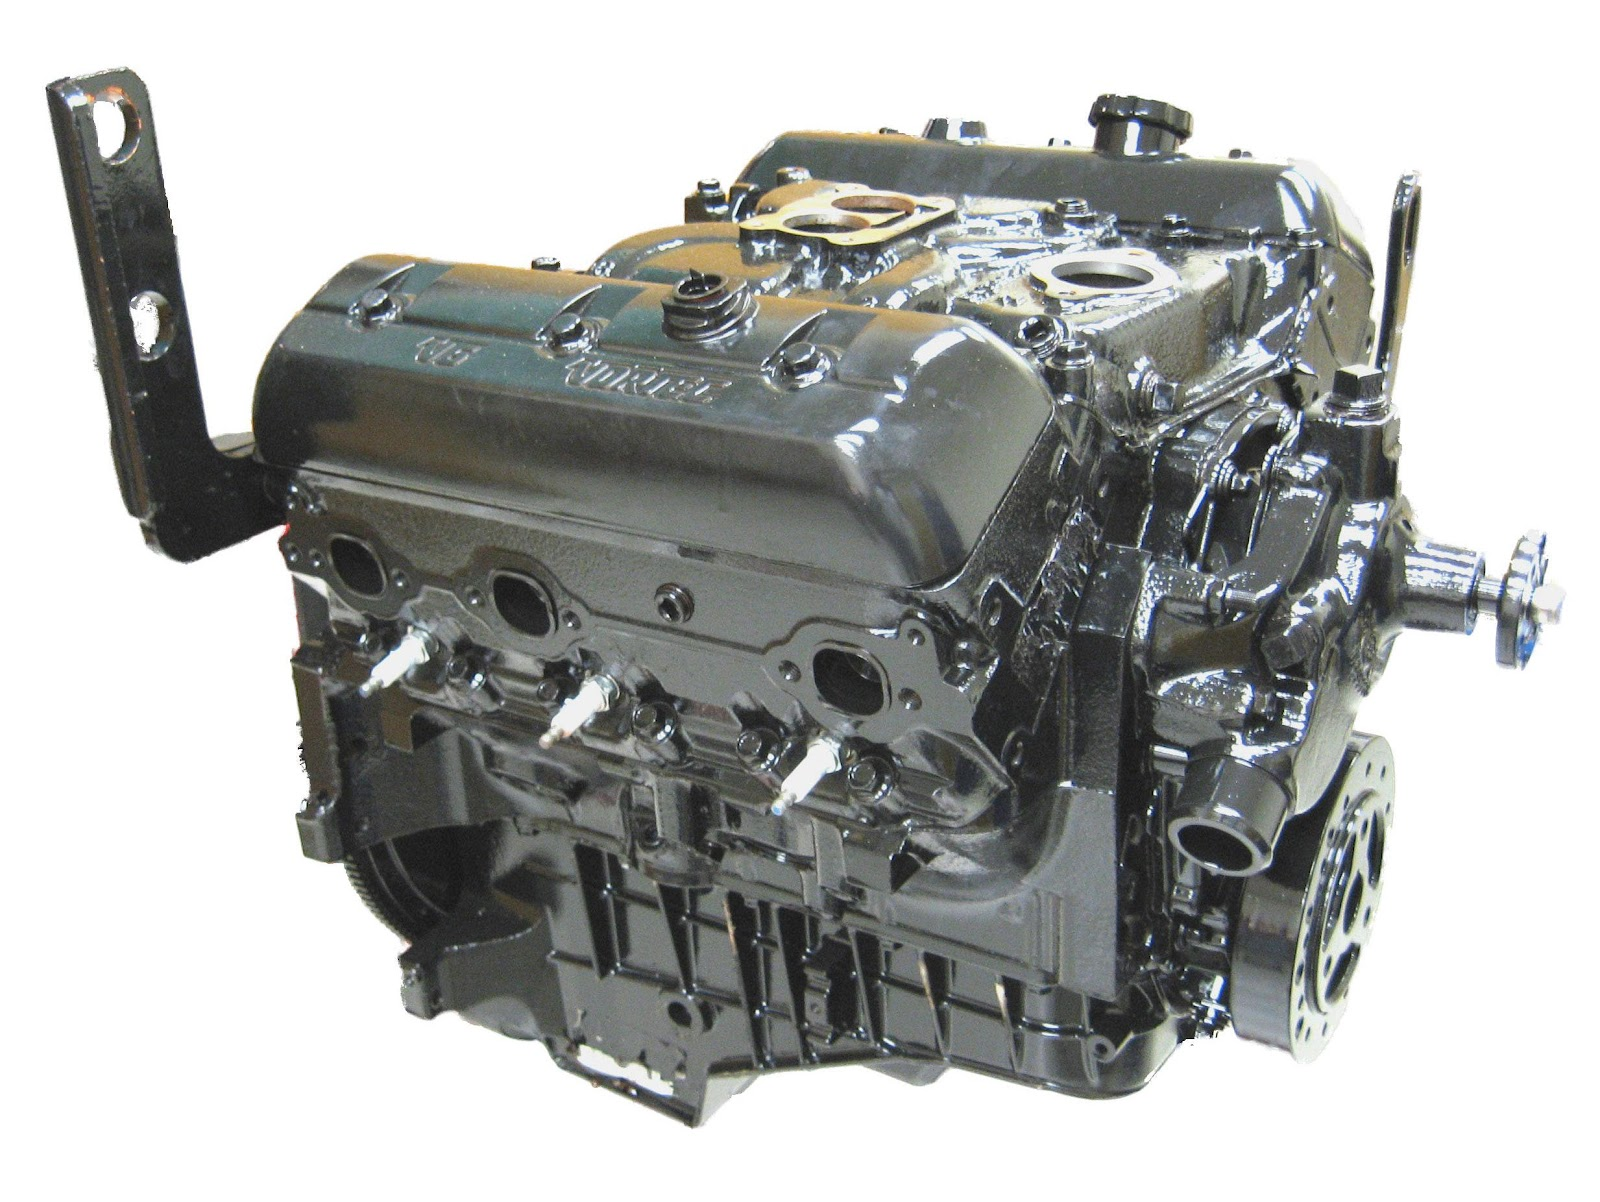 Engines further Melsc N Zyxmzlmaclwq Tq likewise Colorado Engine Crate Engines For Sale likewise Pol moreover . on chevy 350 crate engine prices